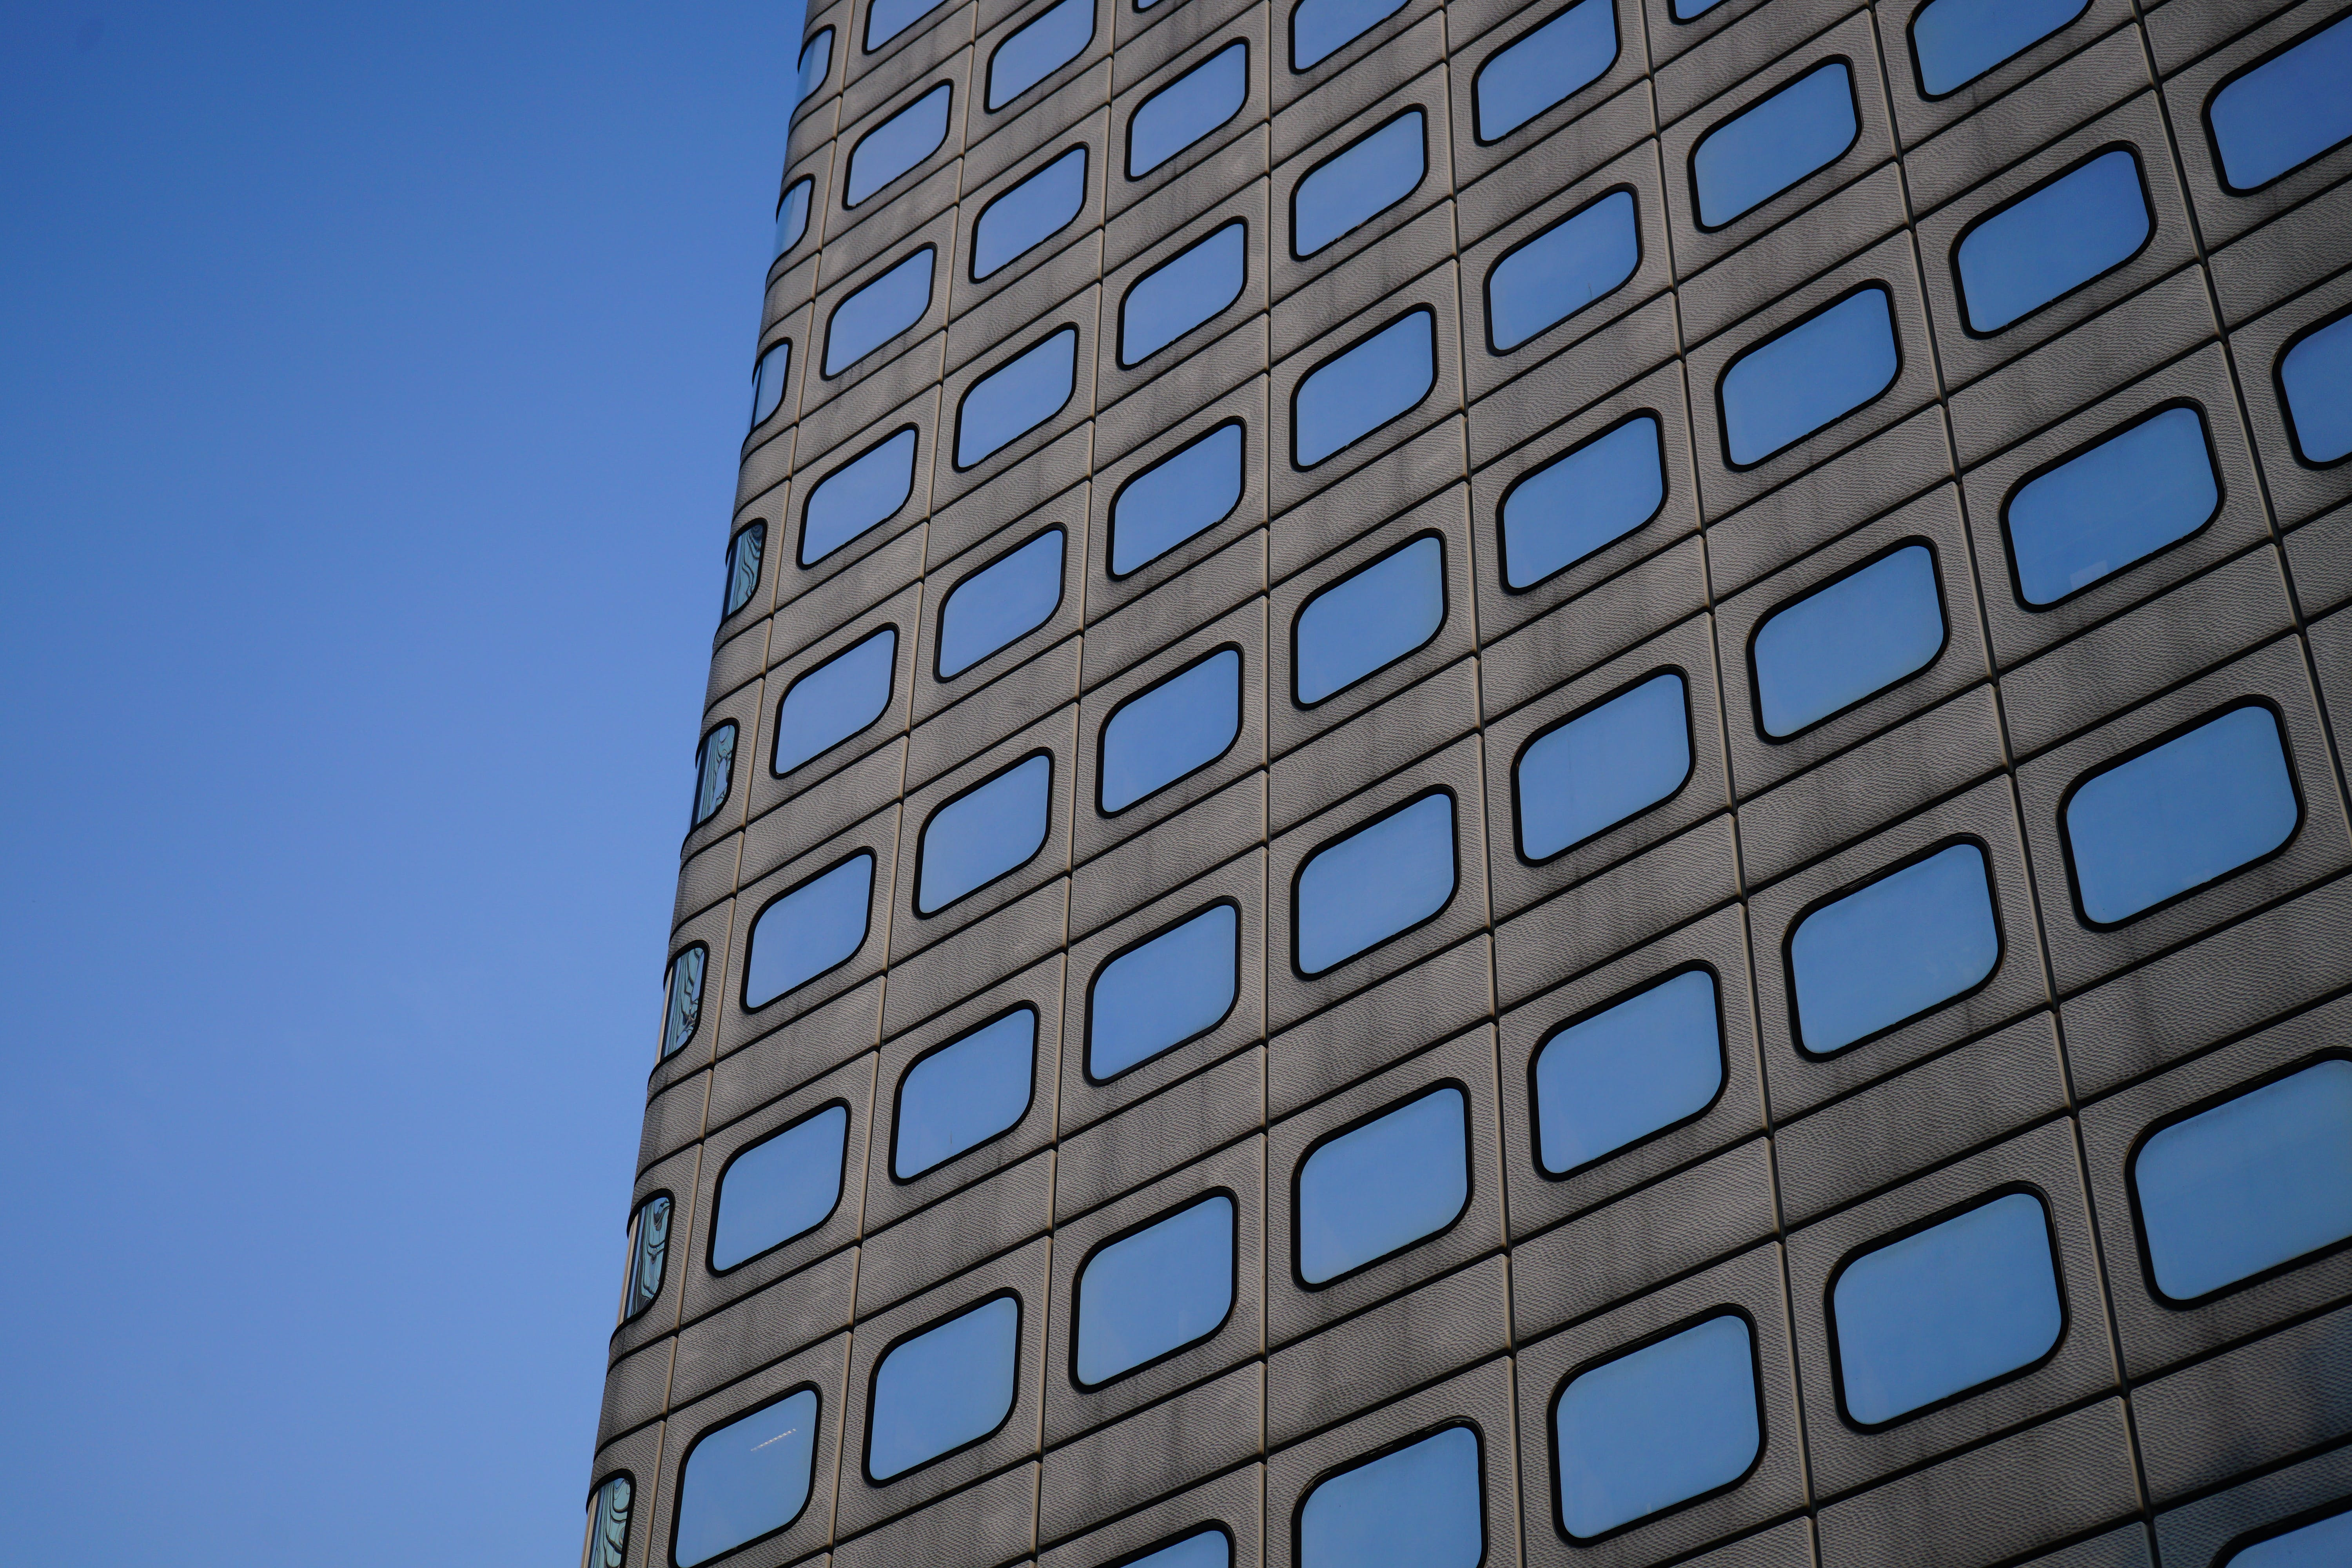 Free stock photo of architect, architectural, blue, buildings